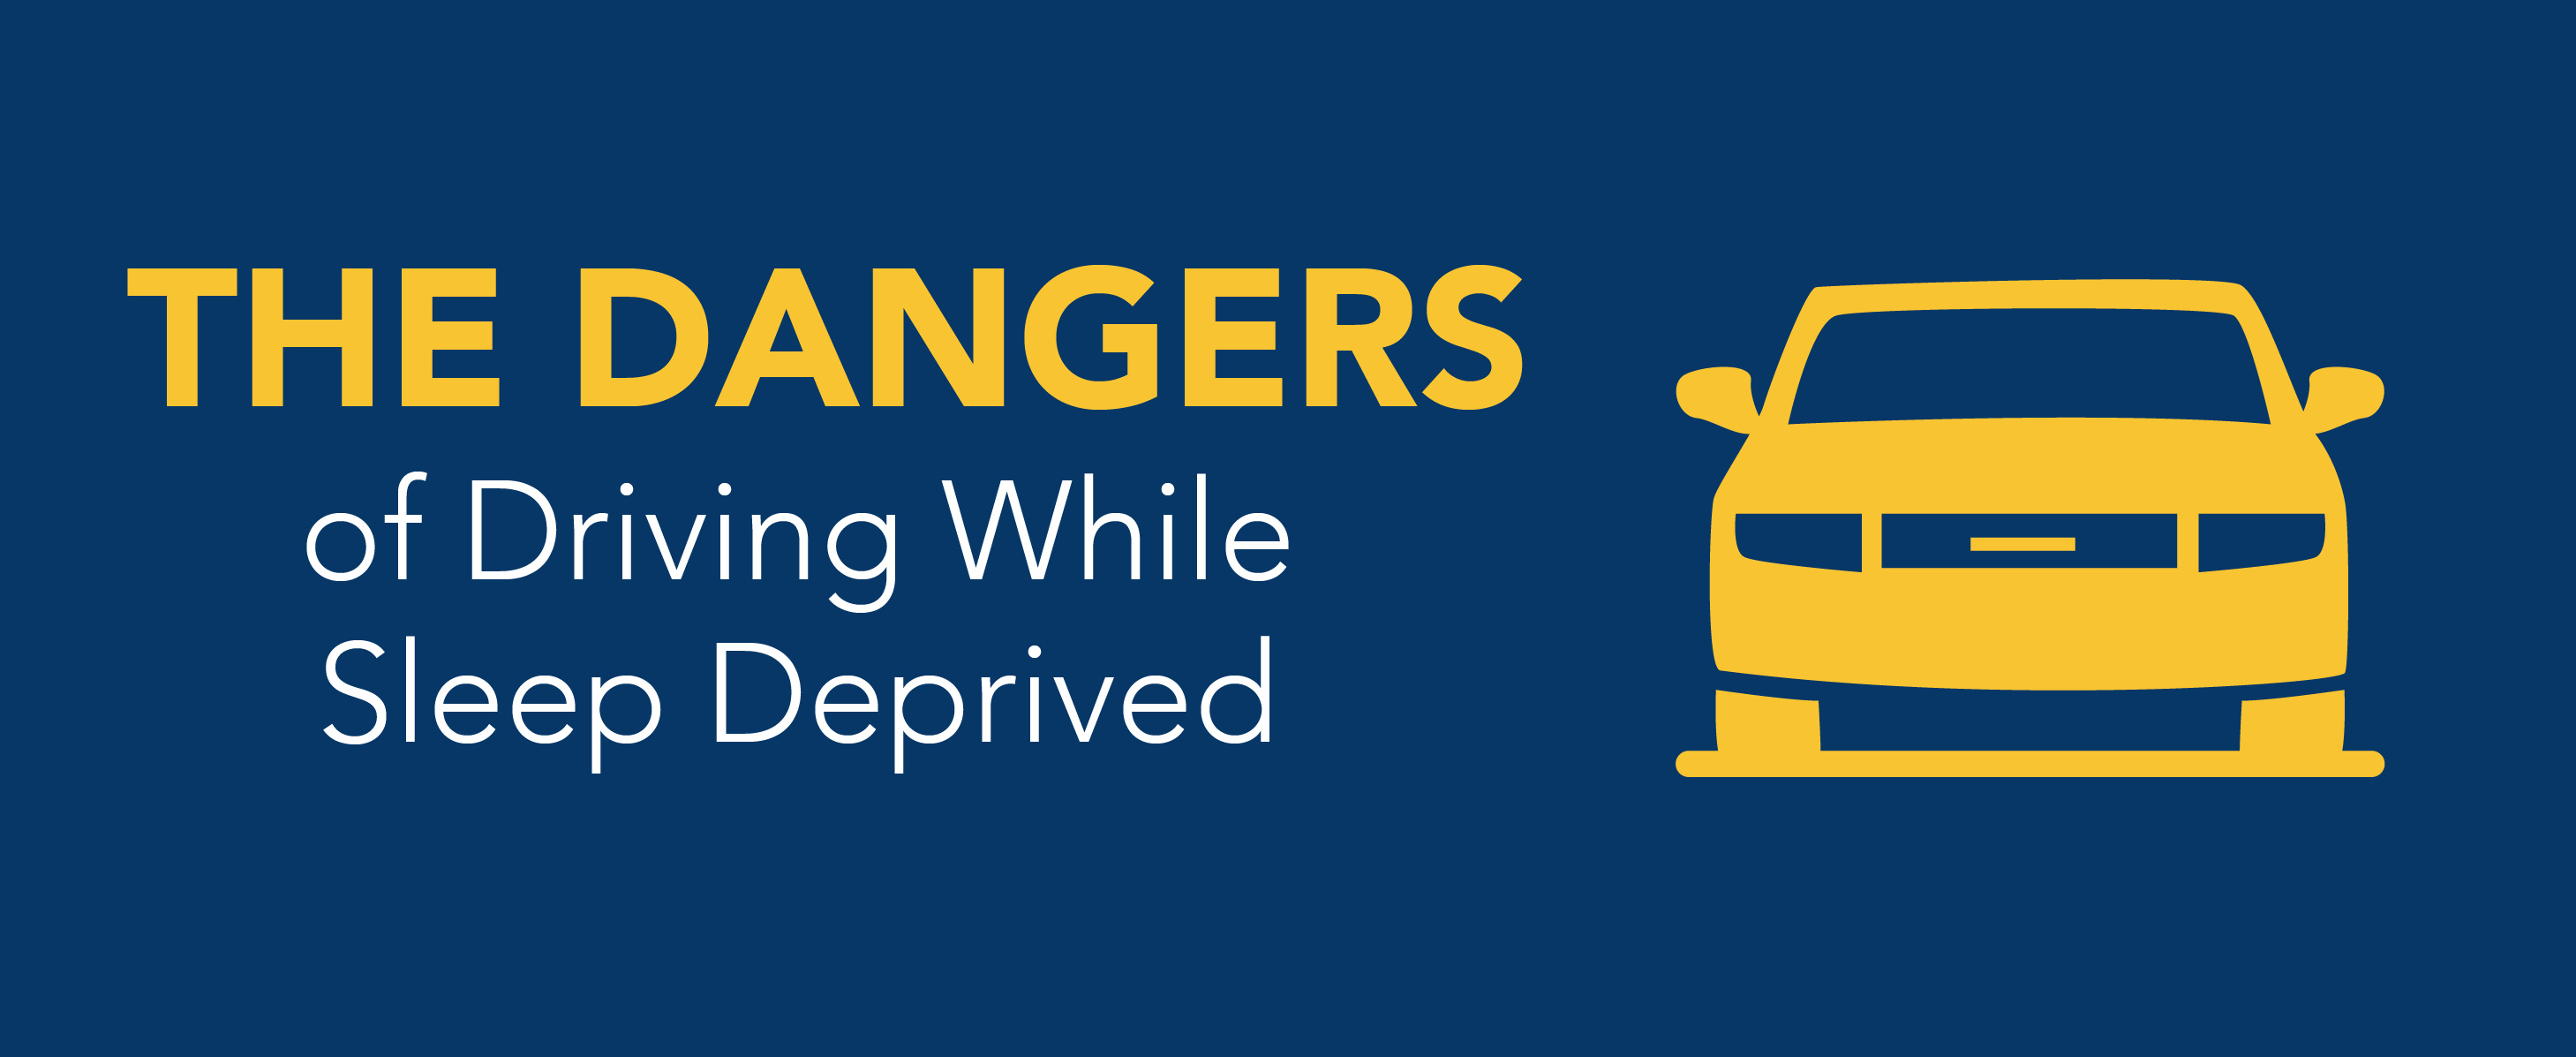 The dangers of driving while sleep deprived